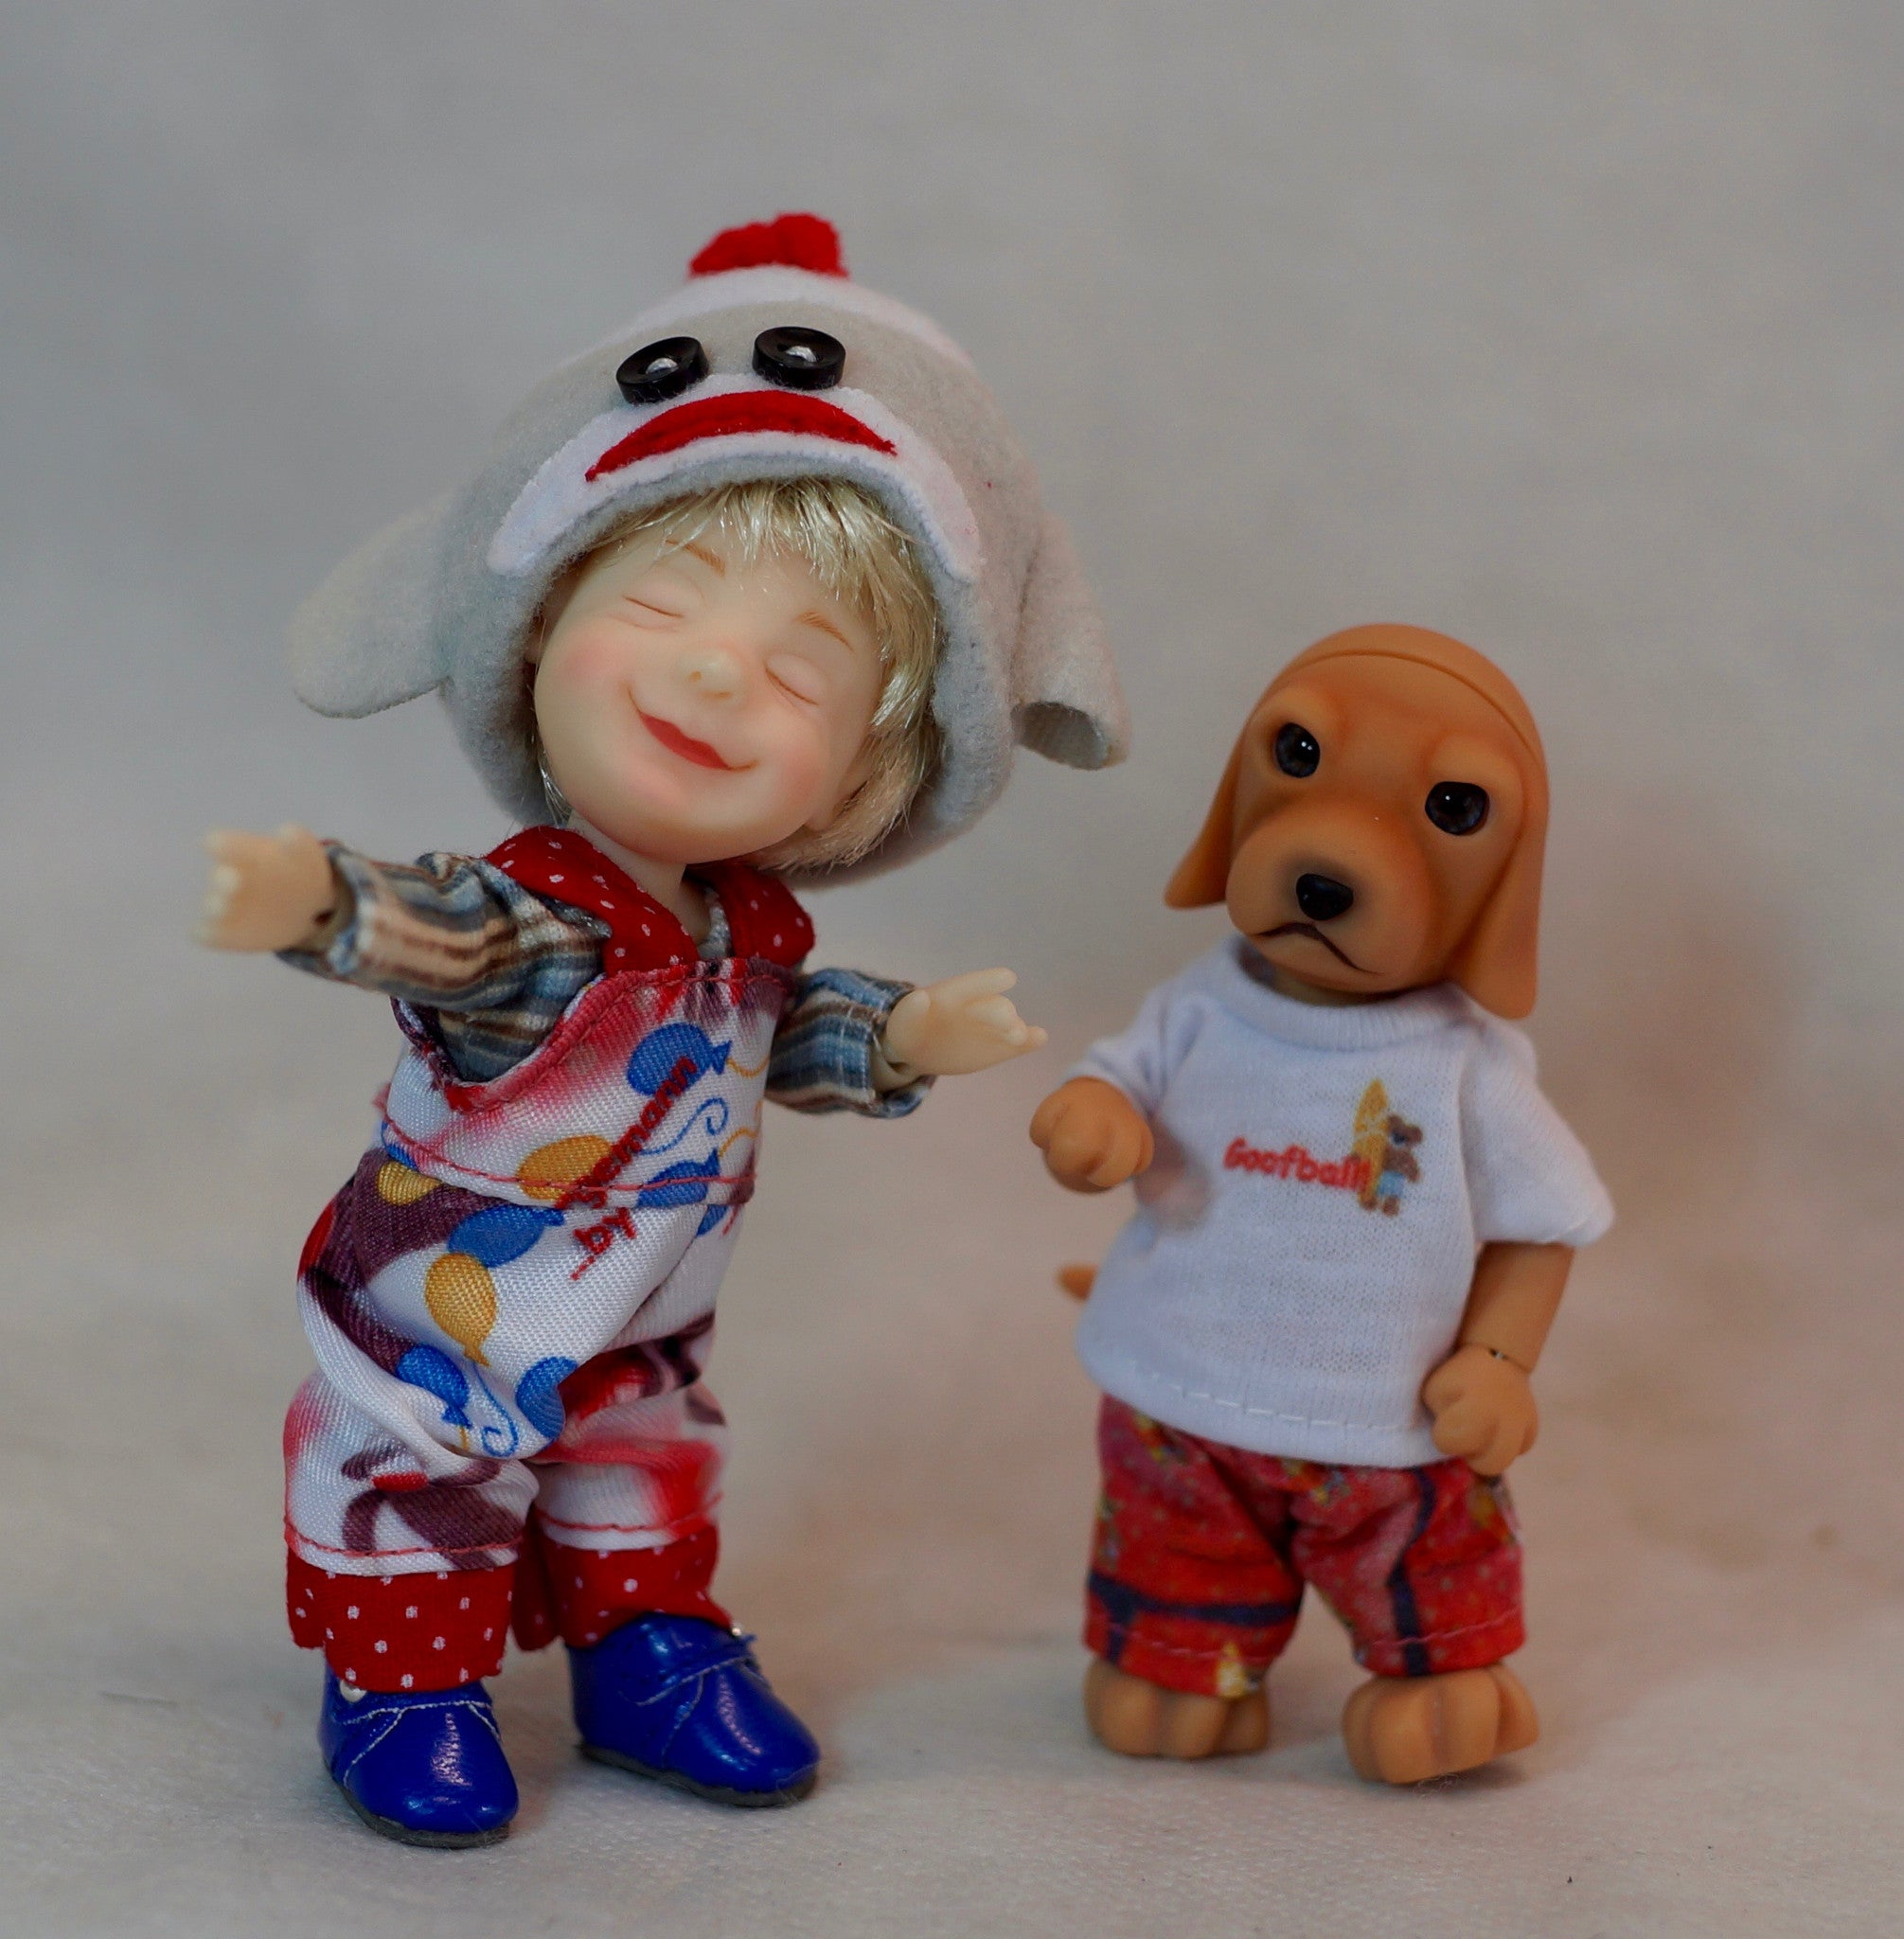 Giggle & Goofball Best Buds Collectible Micro BJD Set by Bo Bergemann